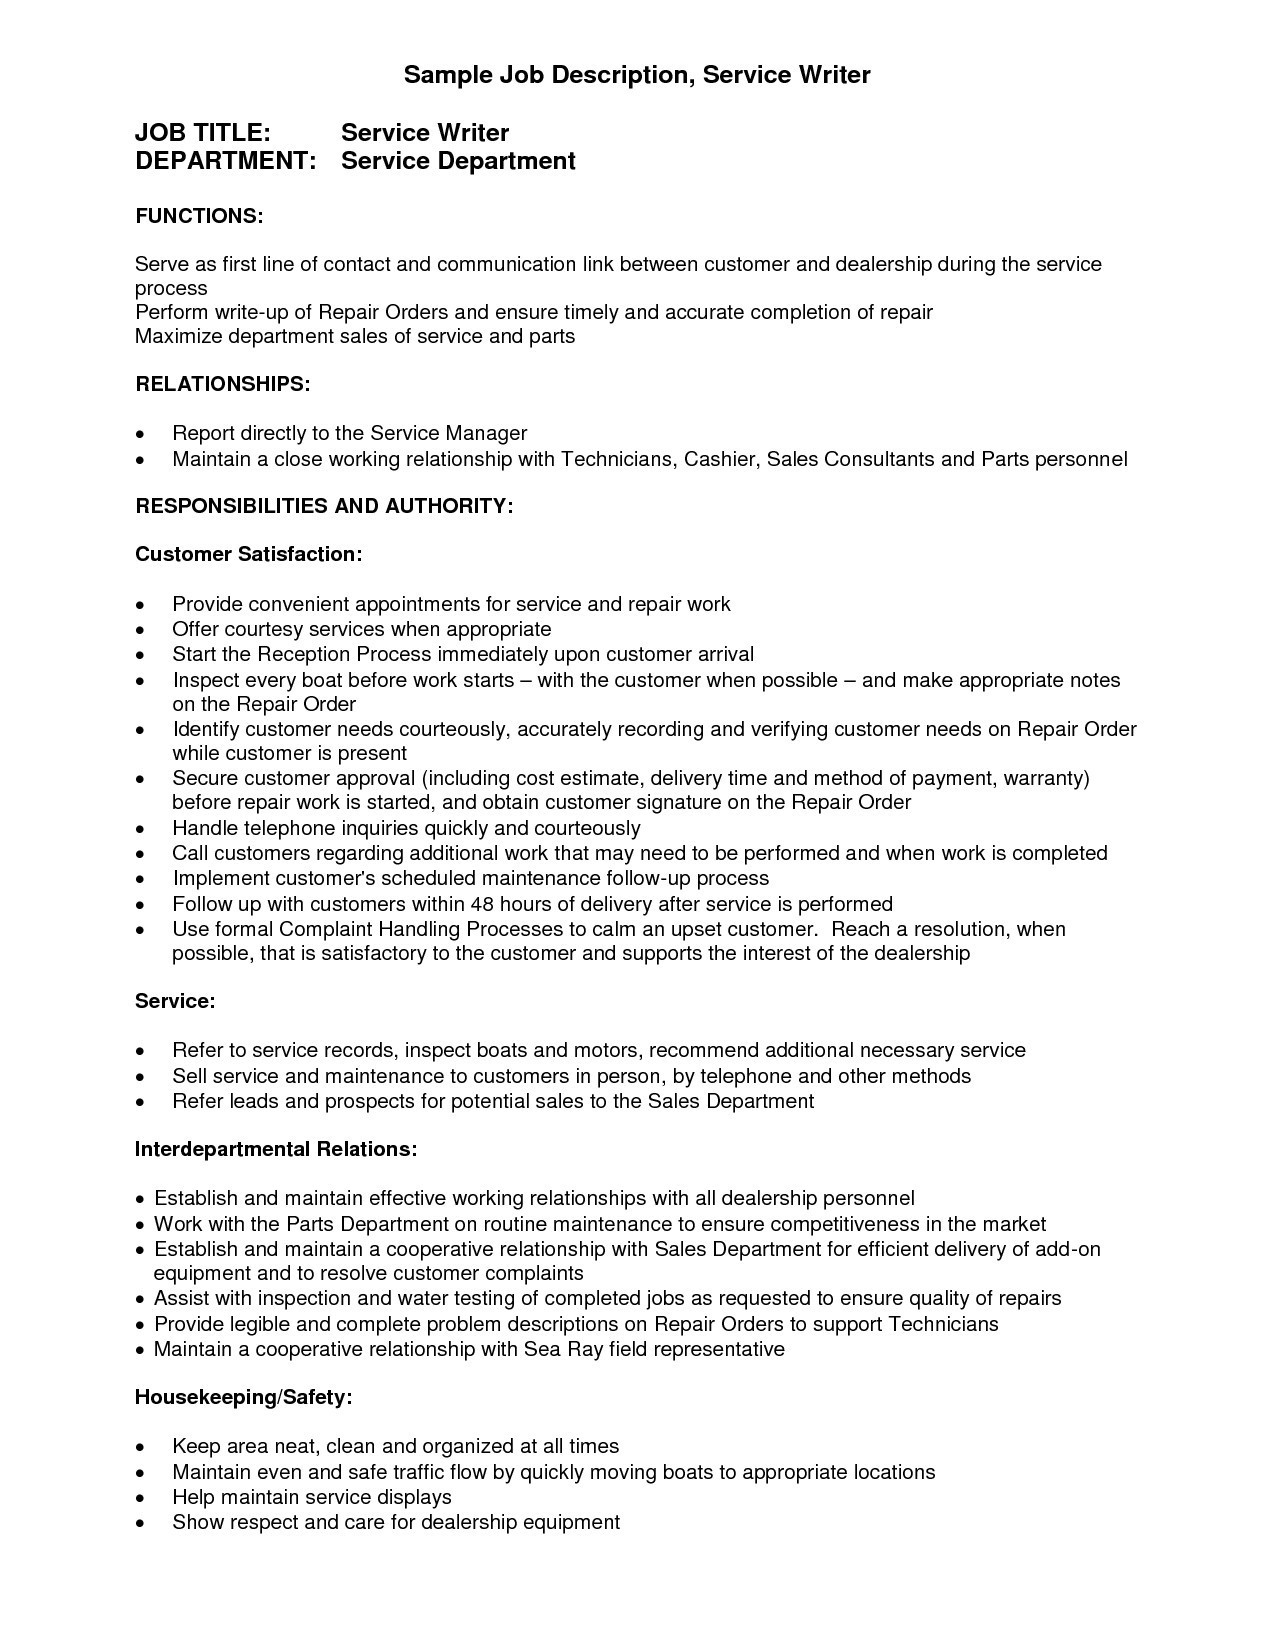 Customer Service Manager Job Description for Resume - Automotive Service Manager Jobs Best 24 Awesome Customer Service